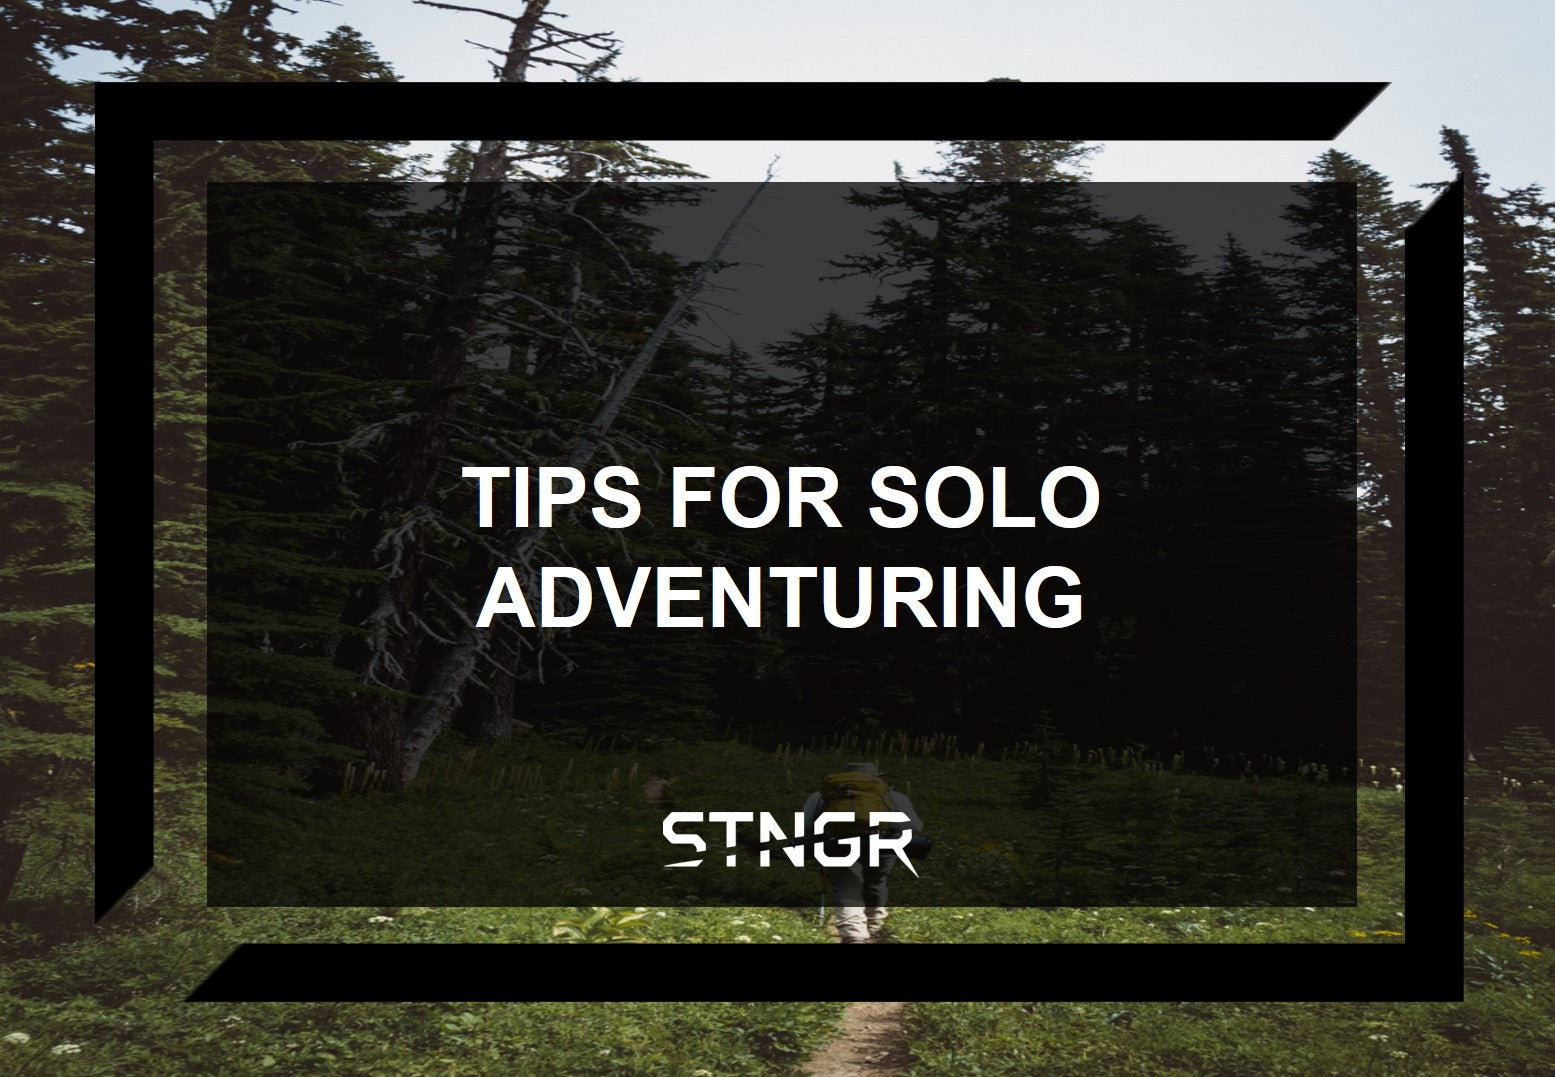 Tips for Solo Adventuring